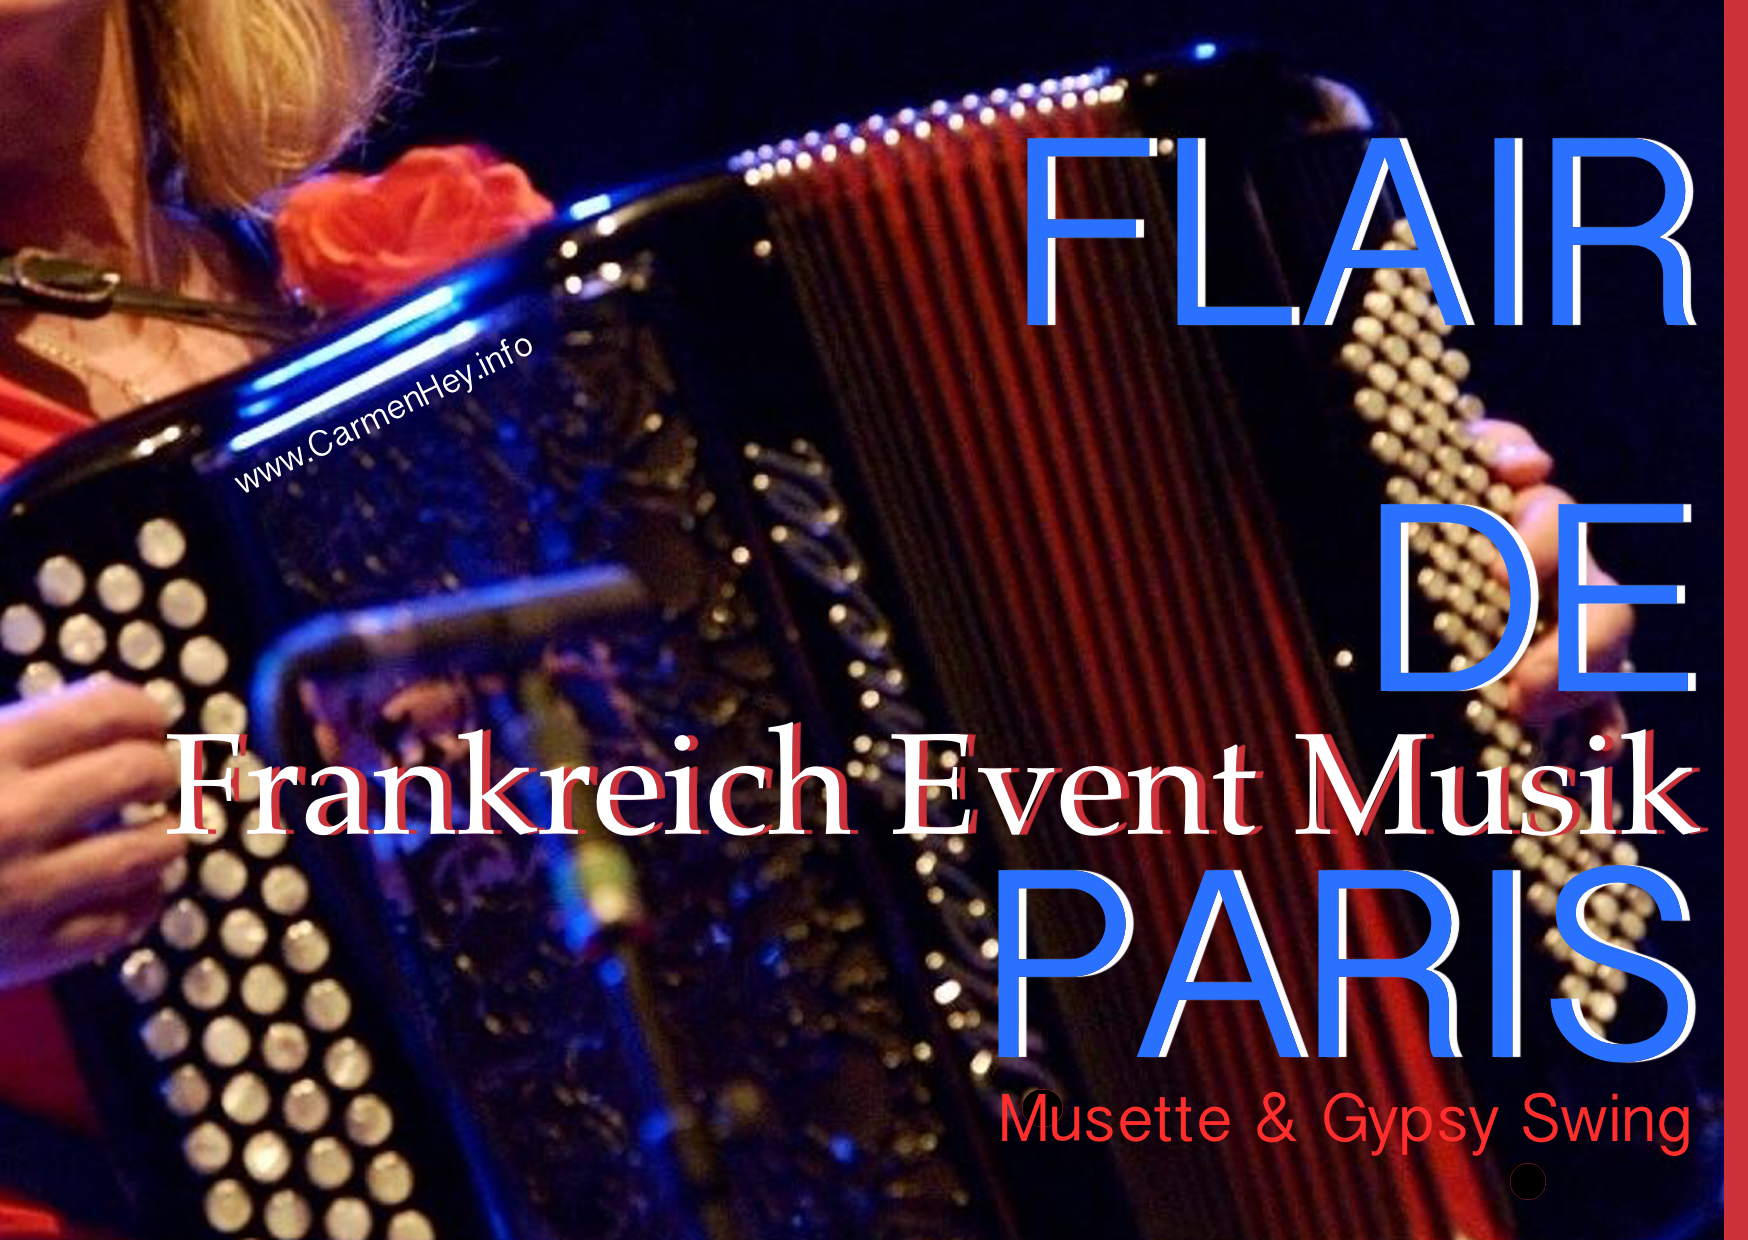 Frankreich Event Musik, Flair de Paris, Berlin, Carmen Hey, Musette & Gypsy Swing